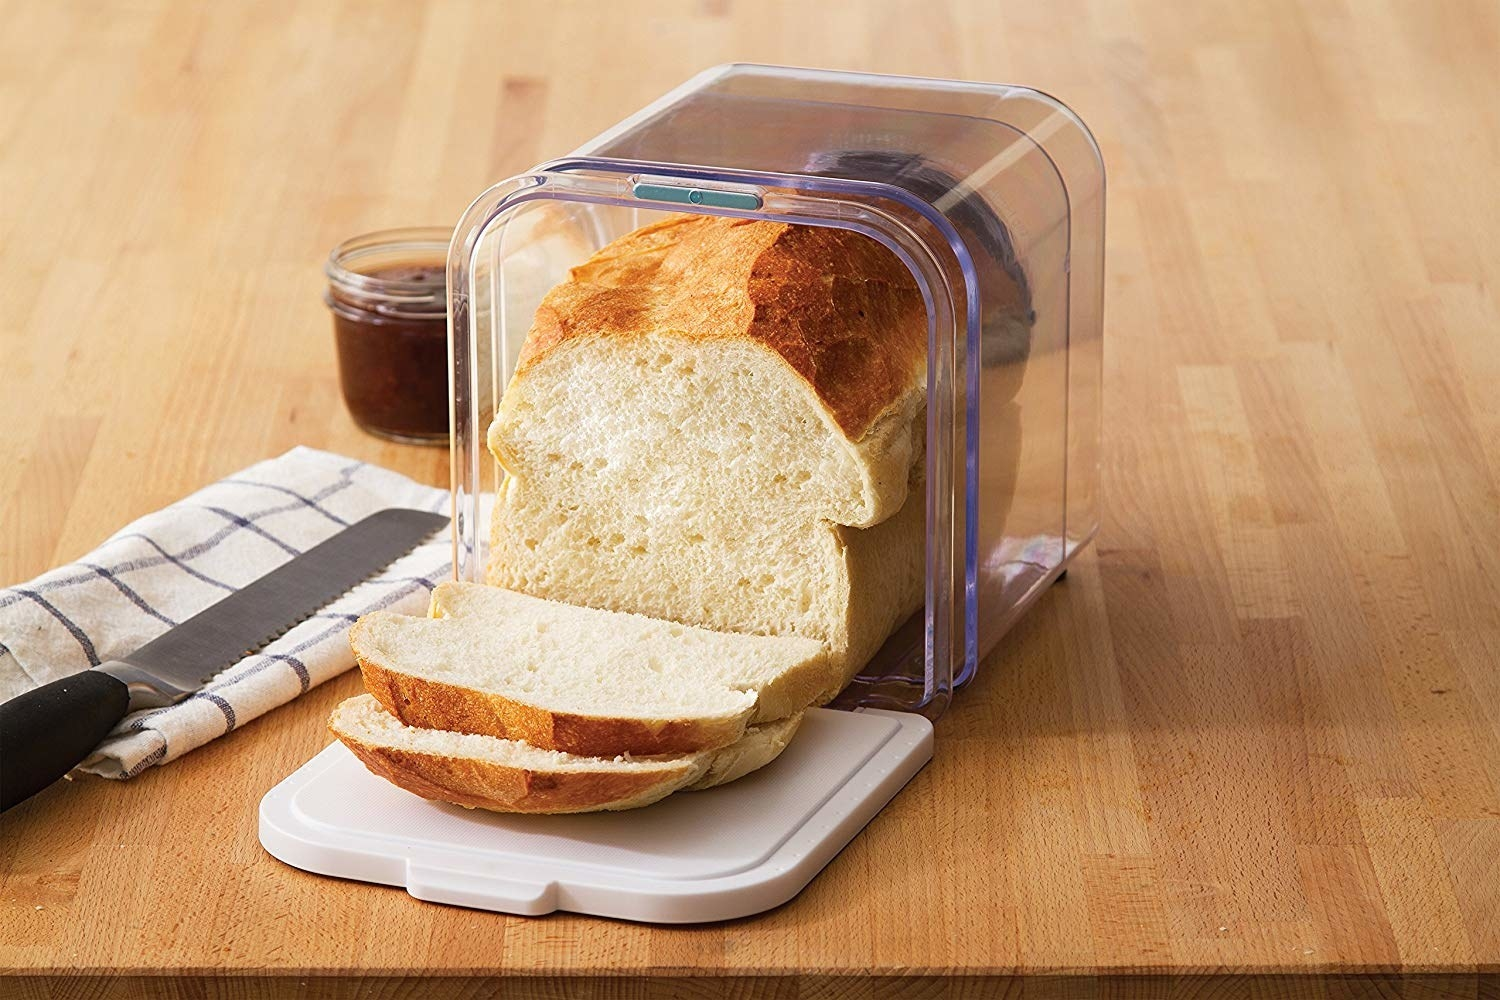 A loaf of bread in a collapsable bread box